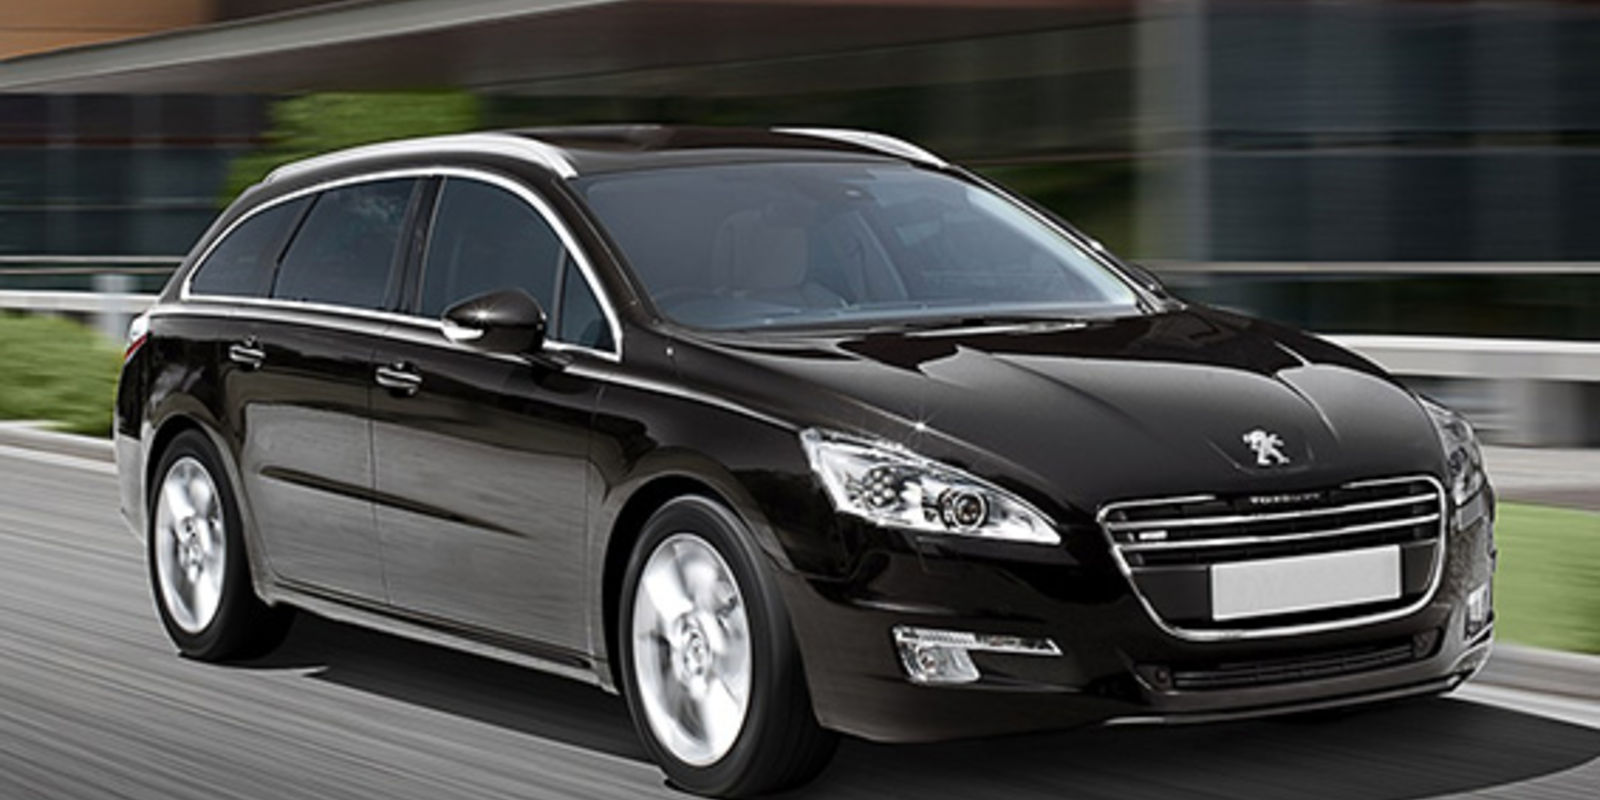 Peugeot 508 SW Review - The Car For You?